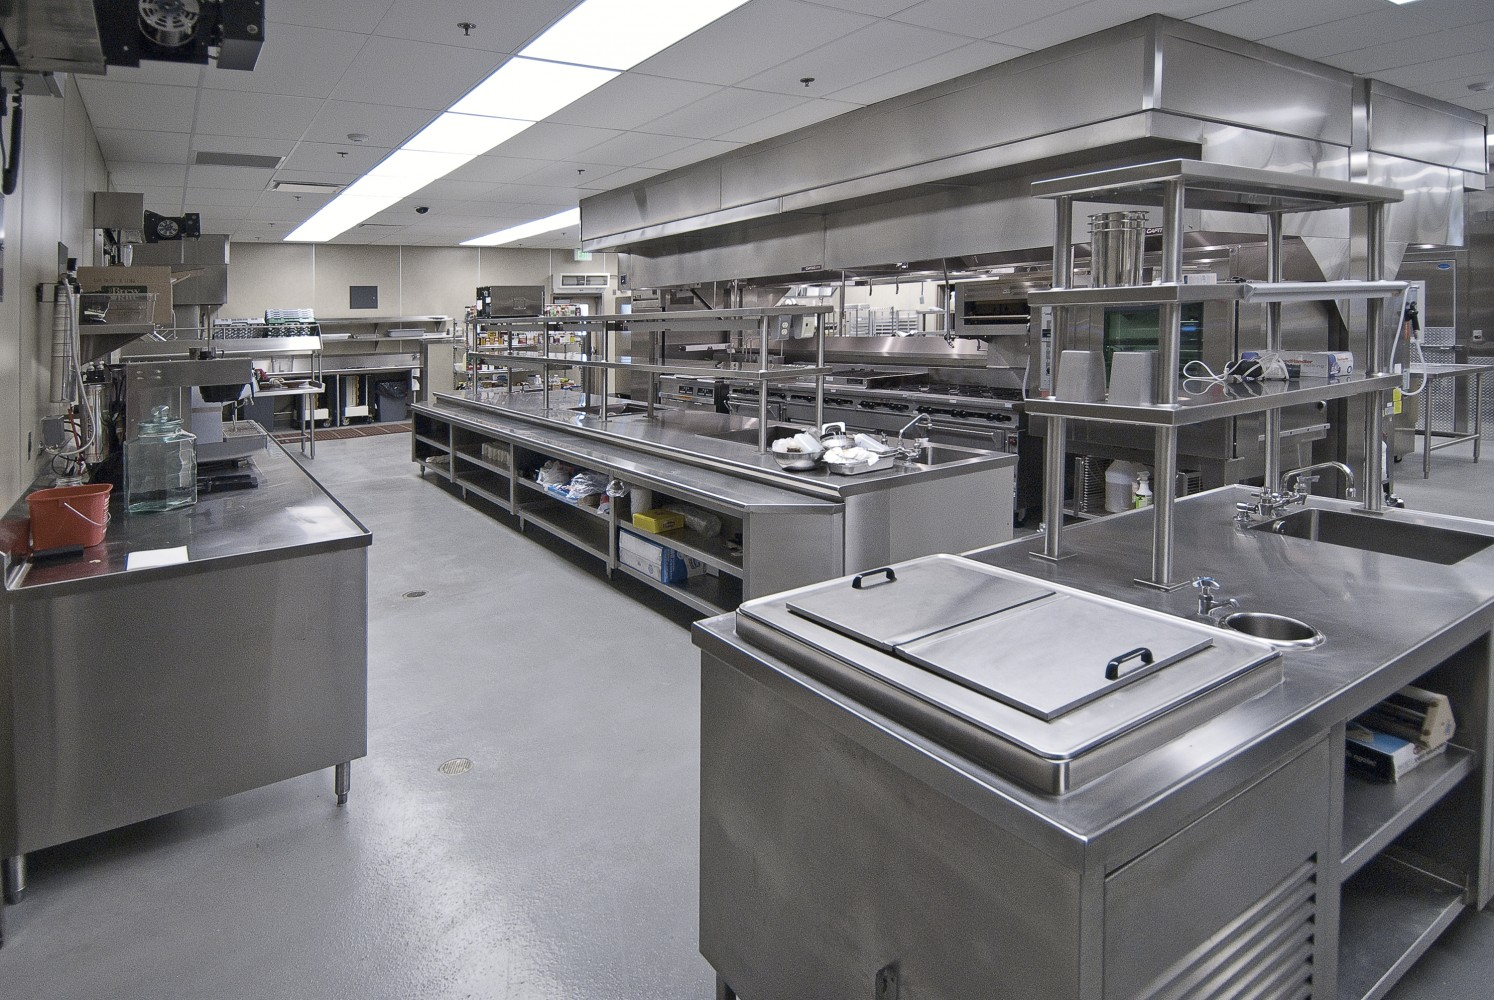 Delicieux Commercial Kitchen Equipment